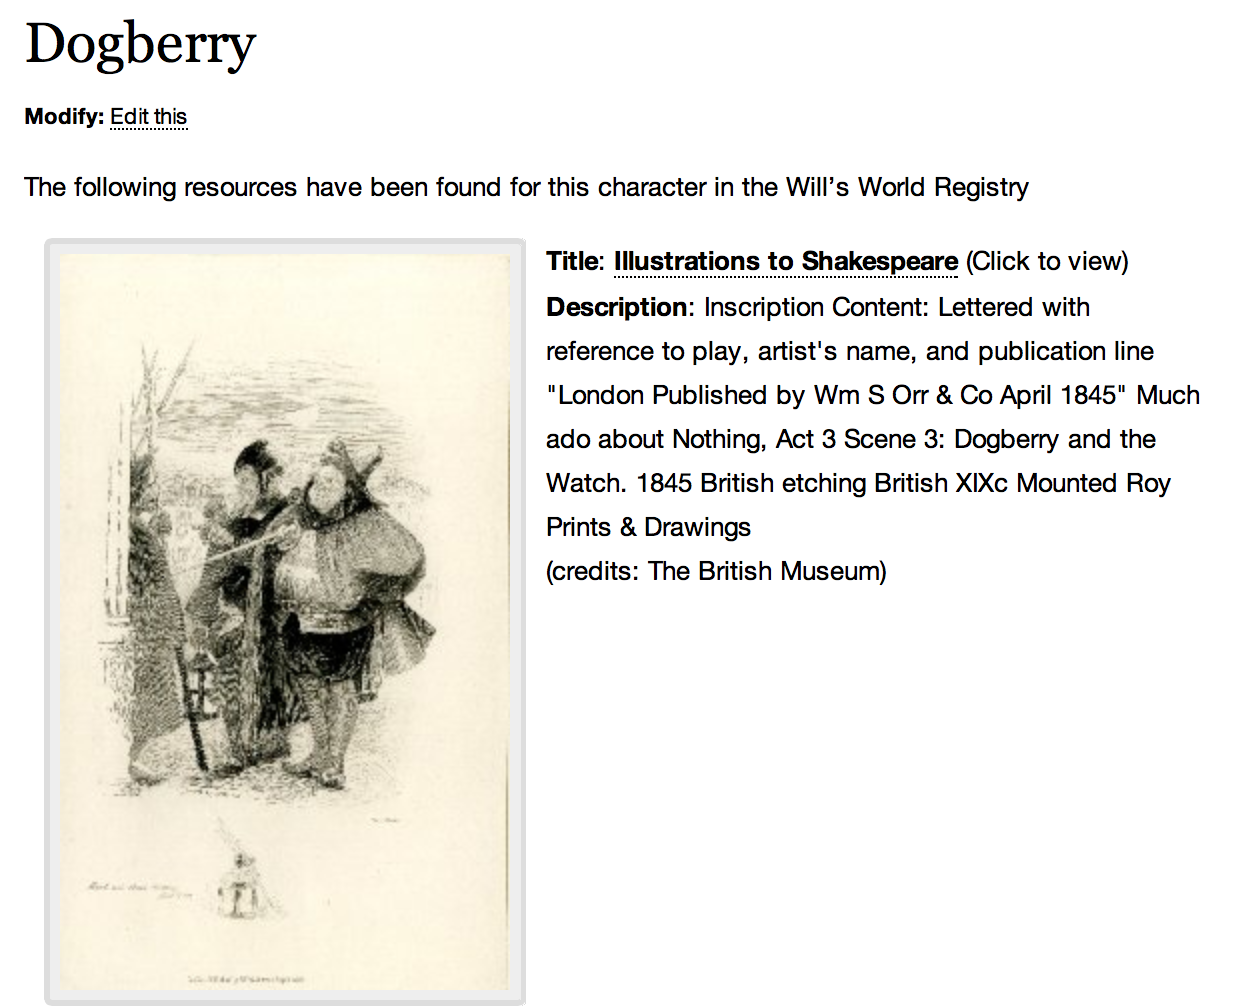 Dogberry page created by ShakespearePress WP plugin